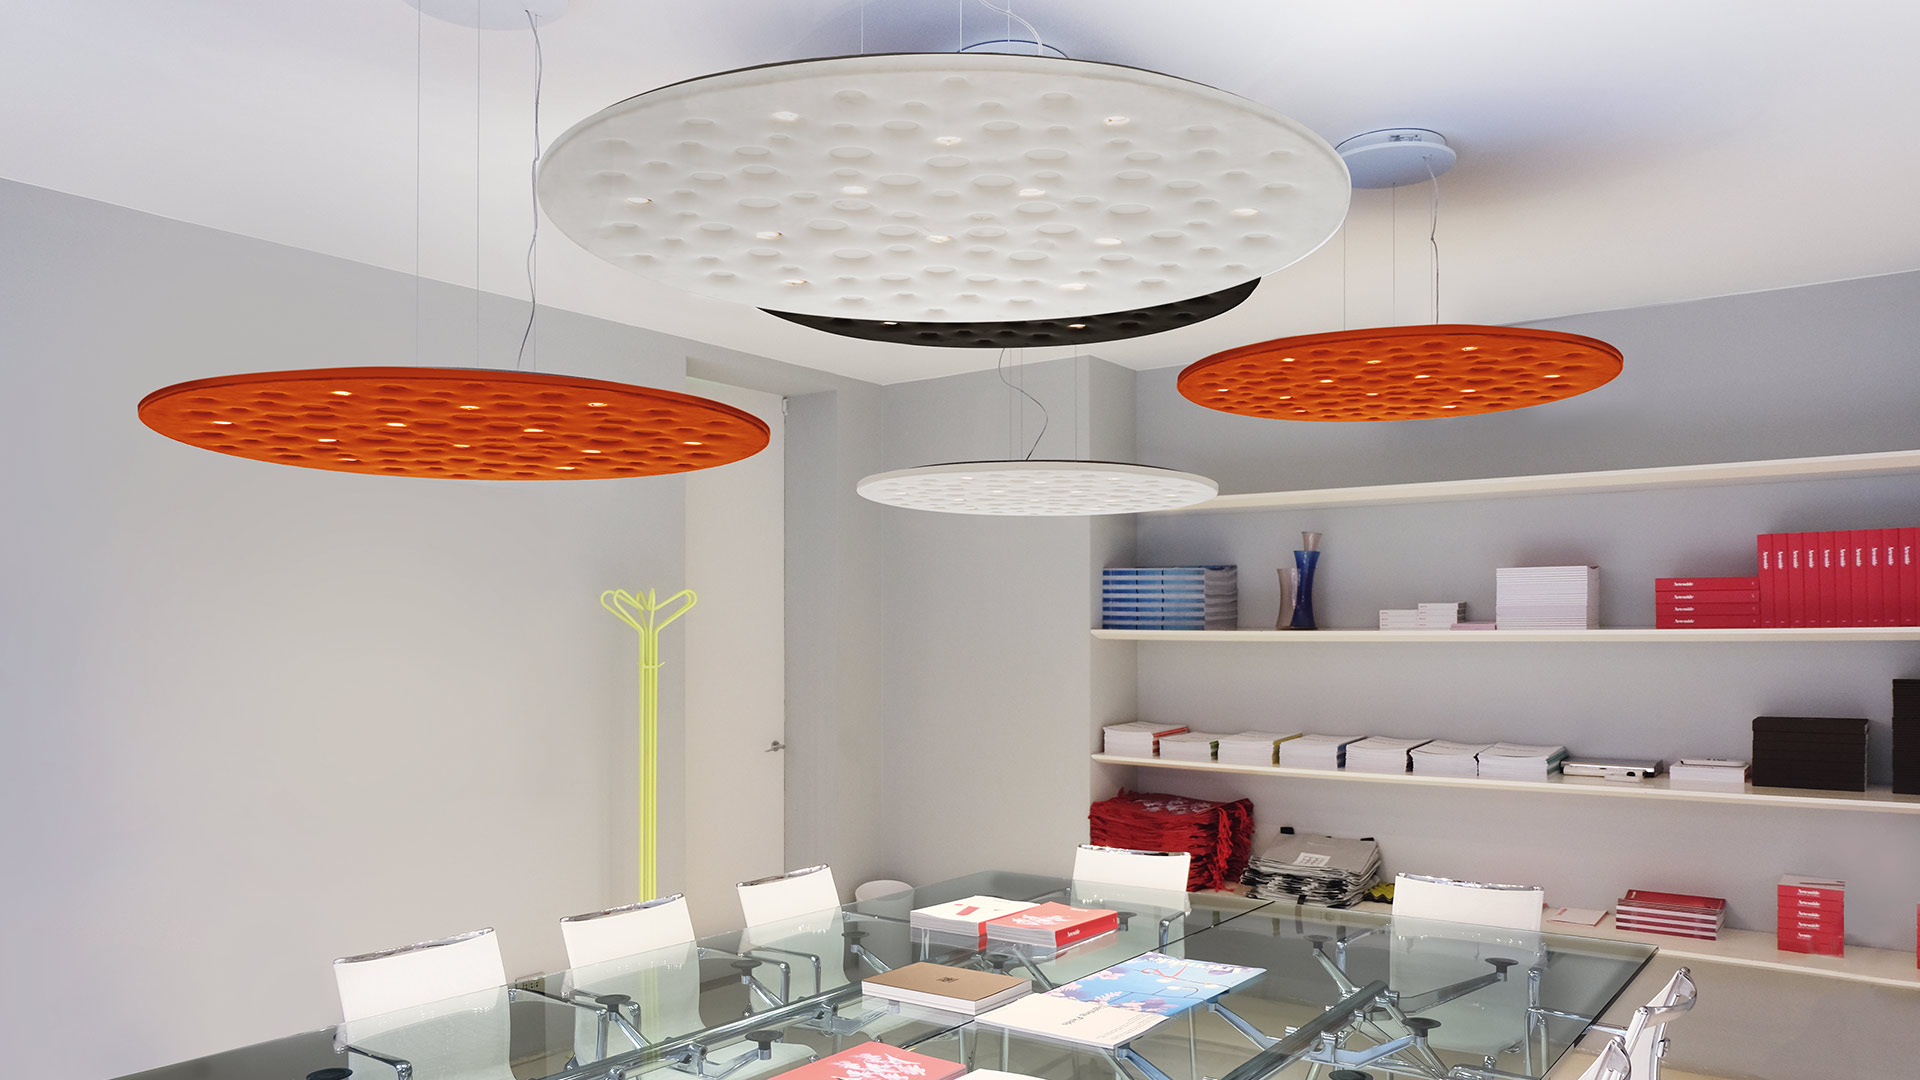 Moon craters for an incredible acoustic comfort and an efficient lighting with Silent Field by Artemide